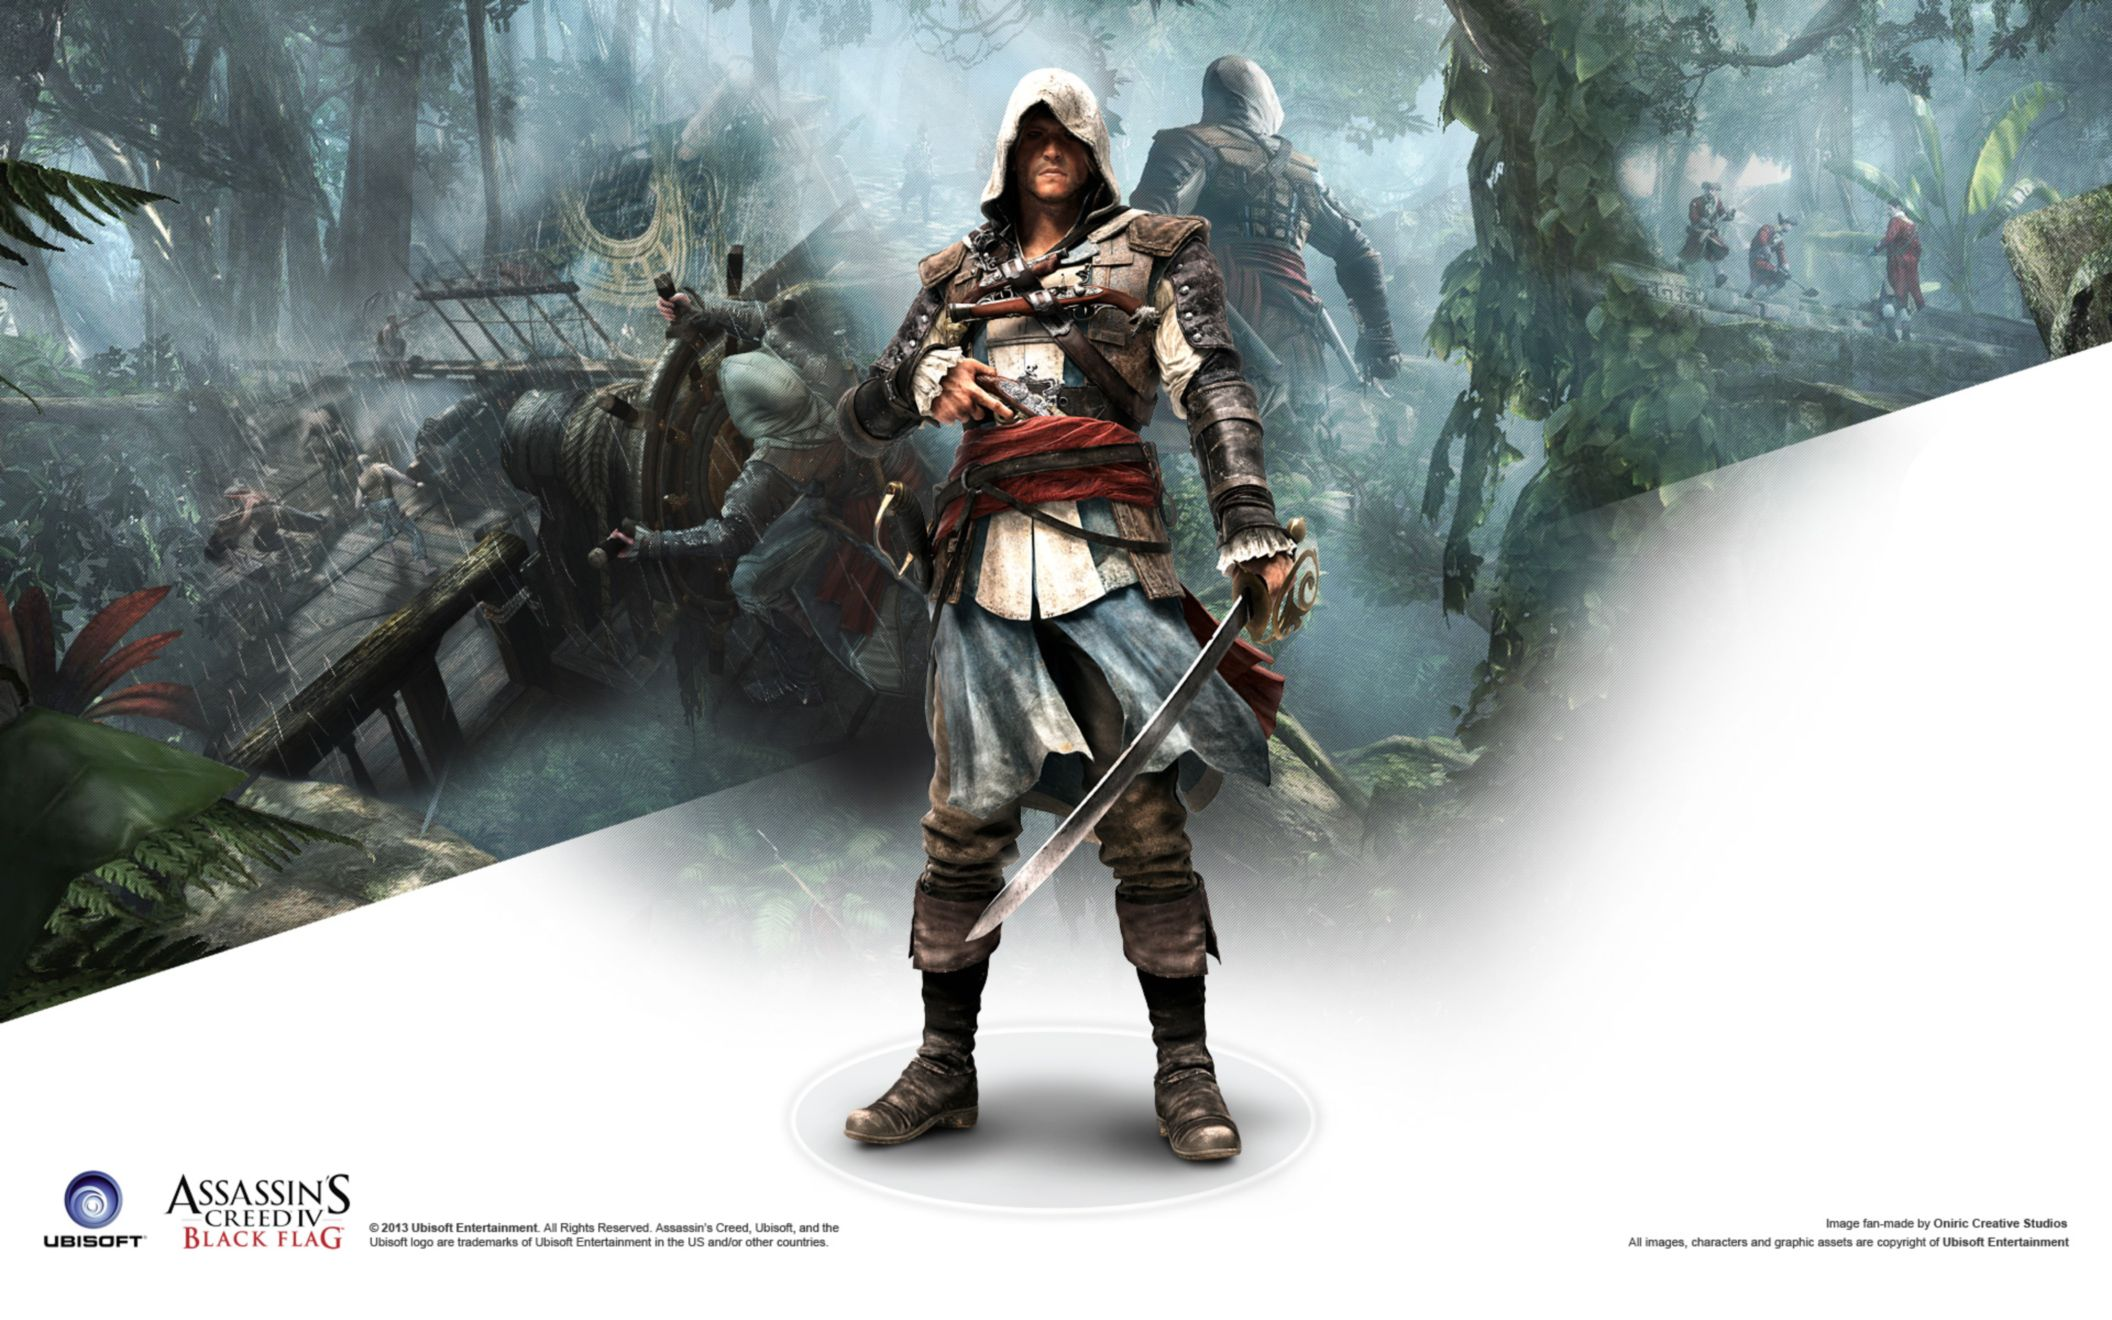 Assassins creed iv black flag game 2 wide wallpaper desktop hd assassins creed iv black flag game 2 wide wallpaper voltagebd Image collections